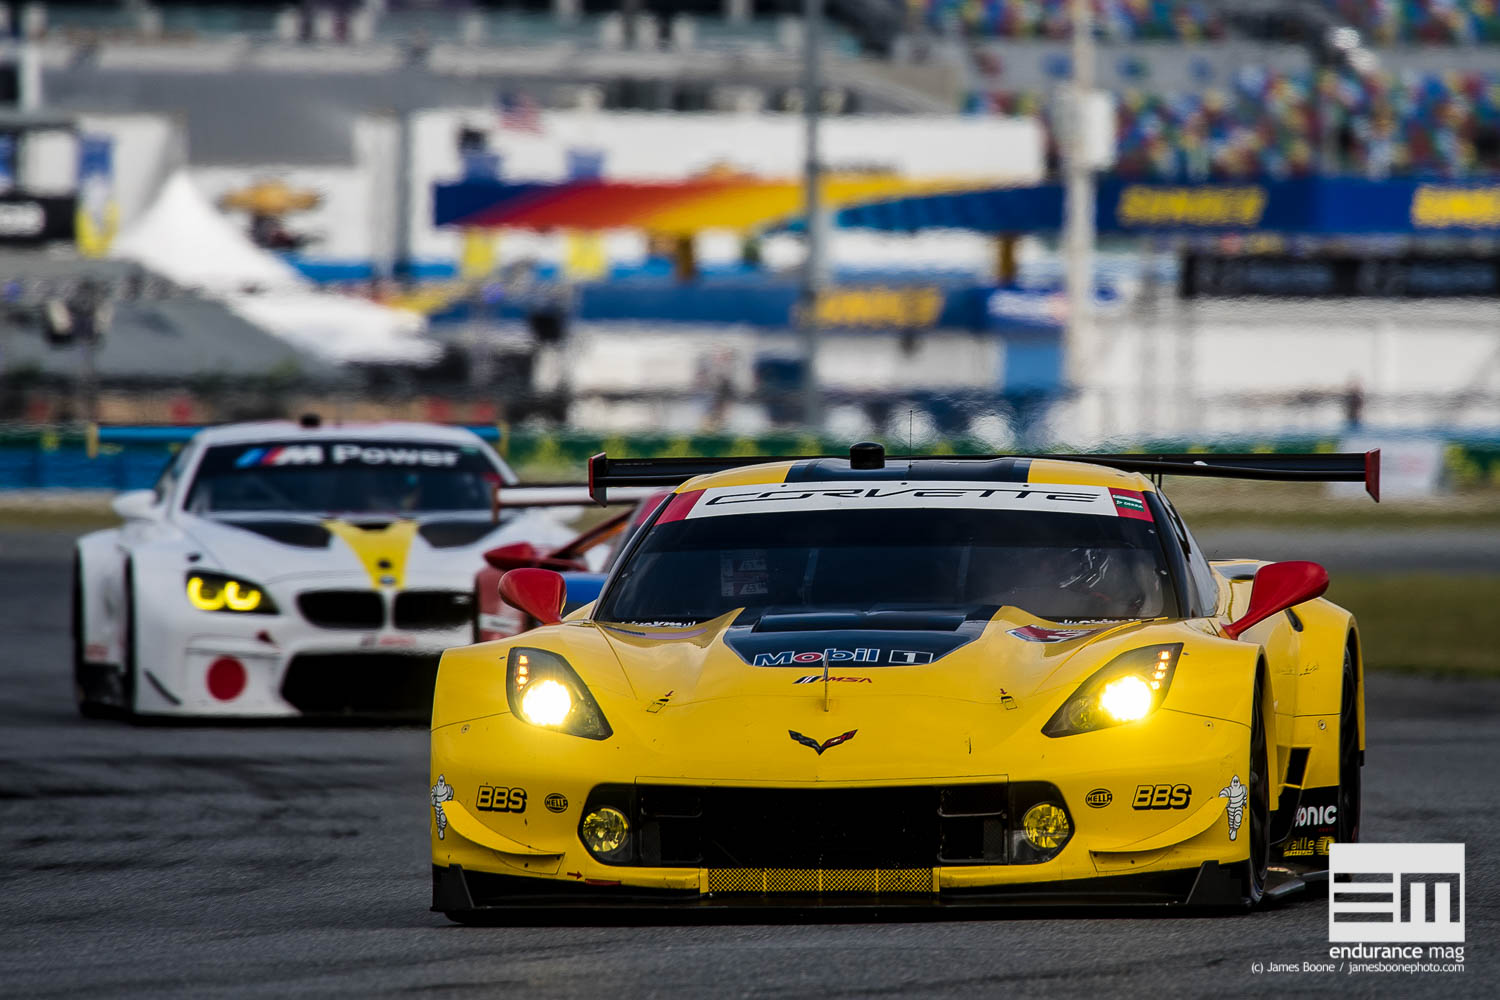 A la maison, les Corvette peuvent-elles de nouveau briller ? (Photo James Boone / Endurance Magazine)